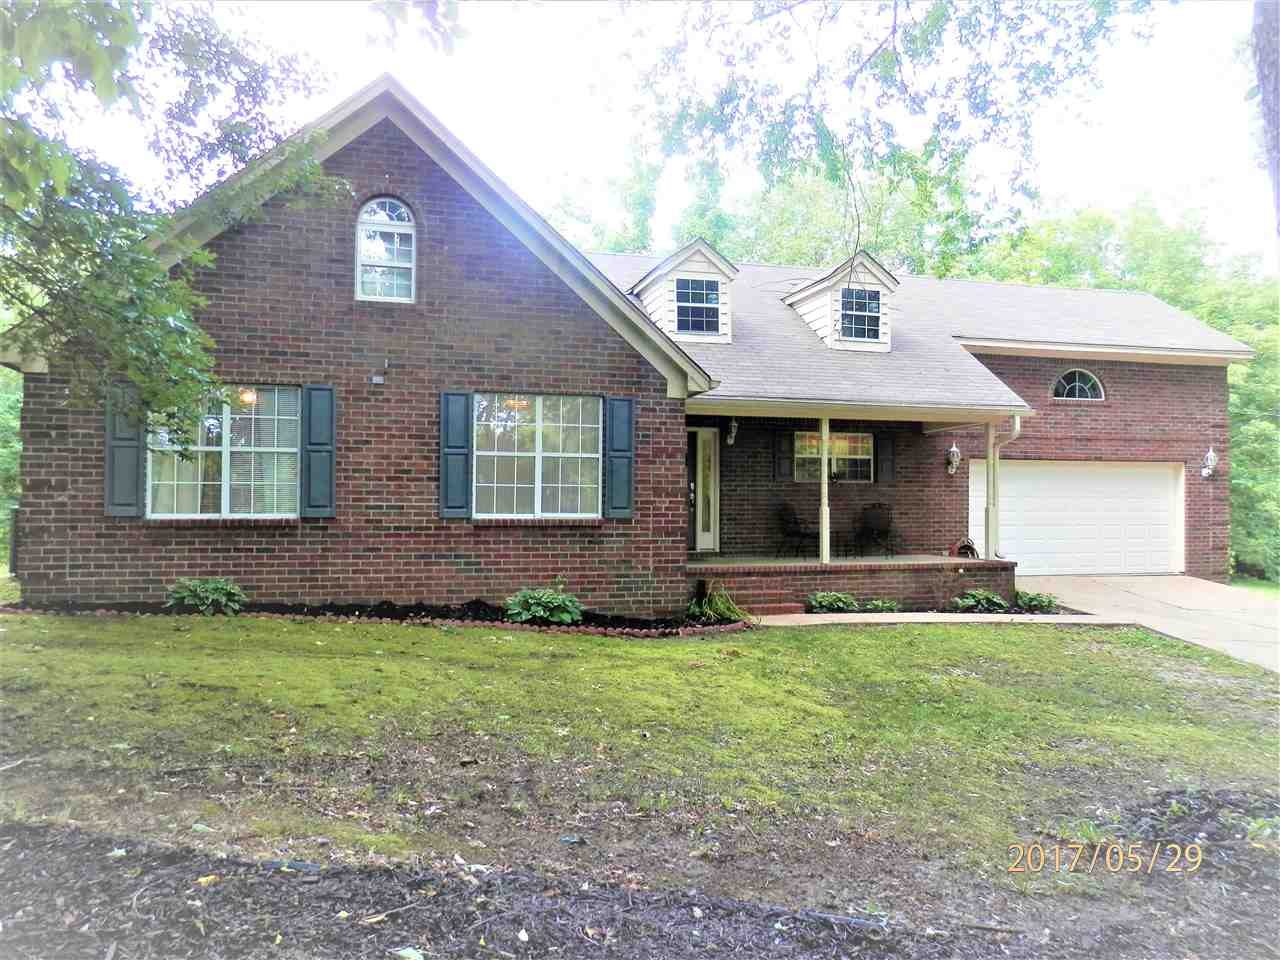 394 Egypt Munford, TN 38058 - MLS #: 10003466